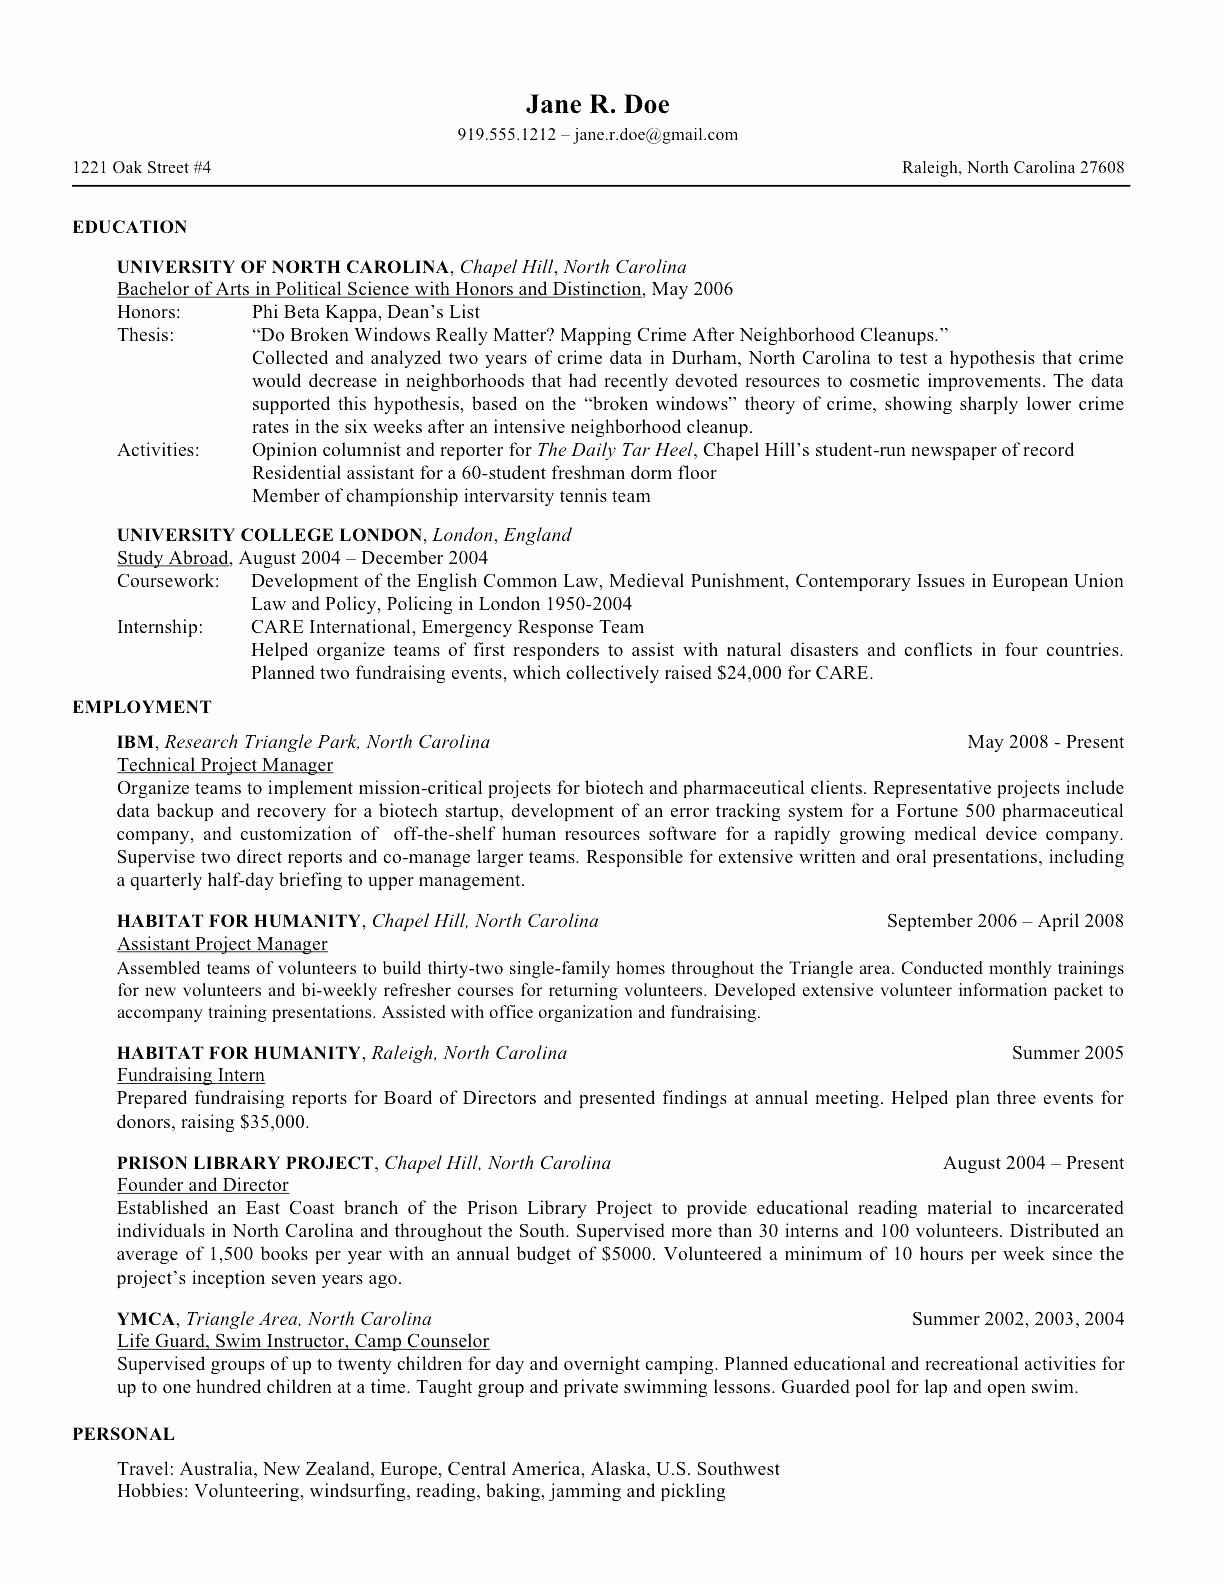 Internship Resume Template Microsoft Word - Internship Resume Template Elegant Internship Resume Template Word